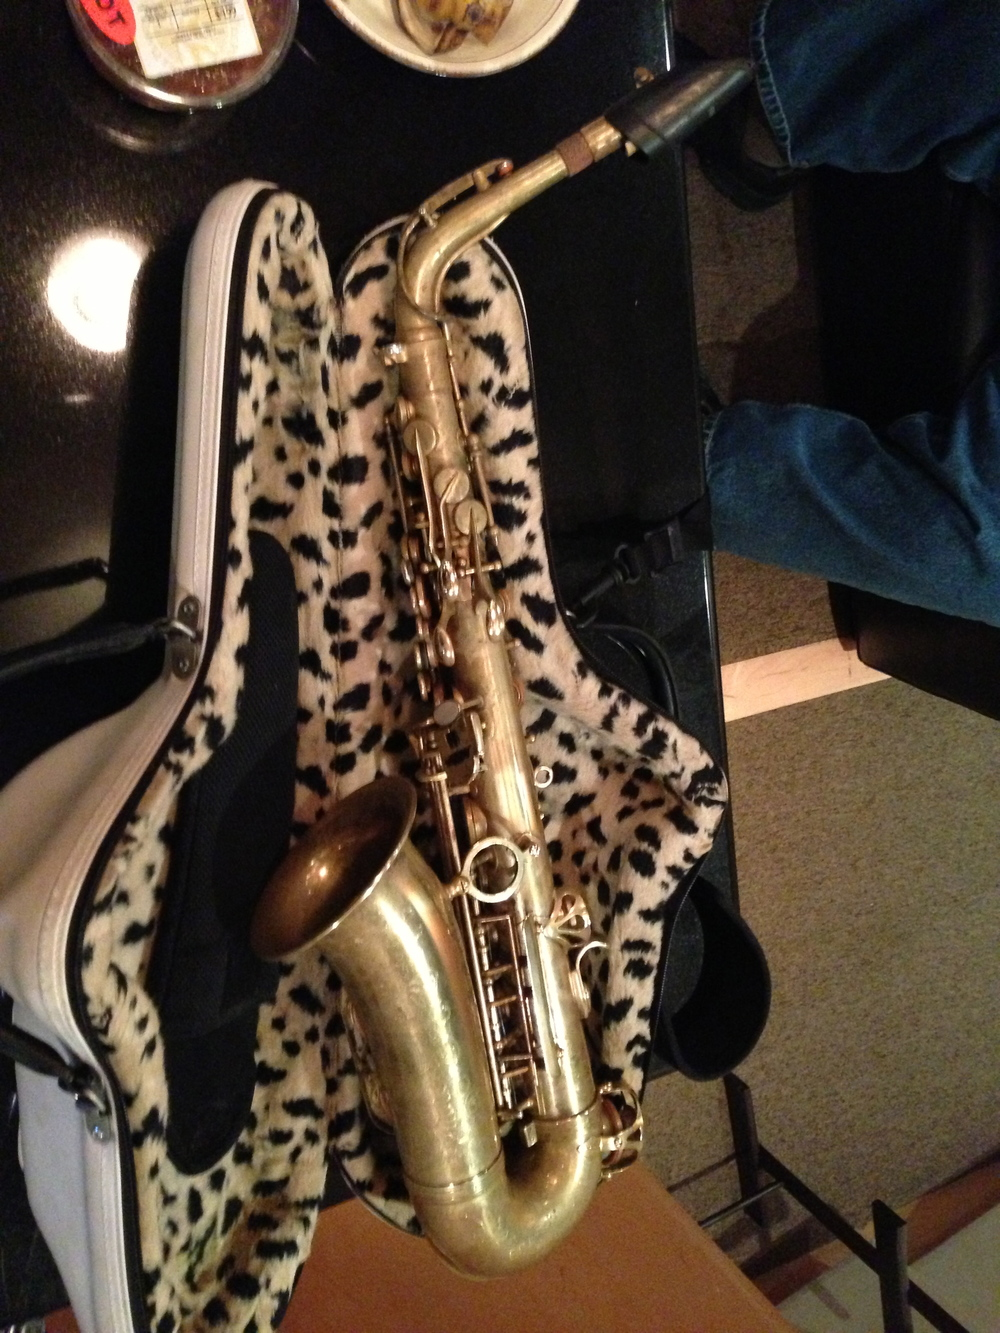 Candy's sax